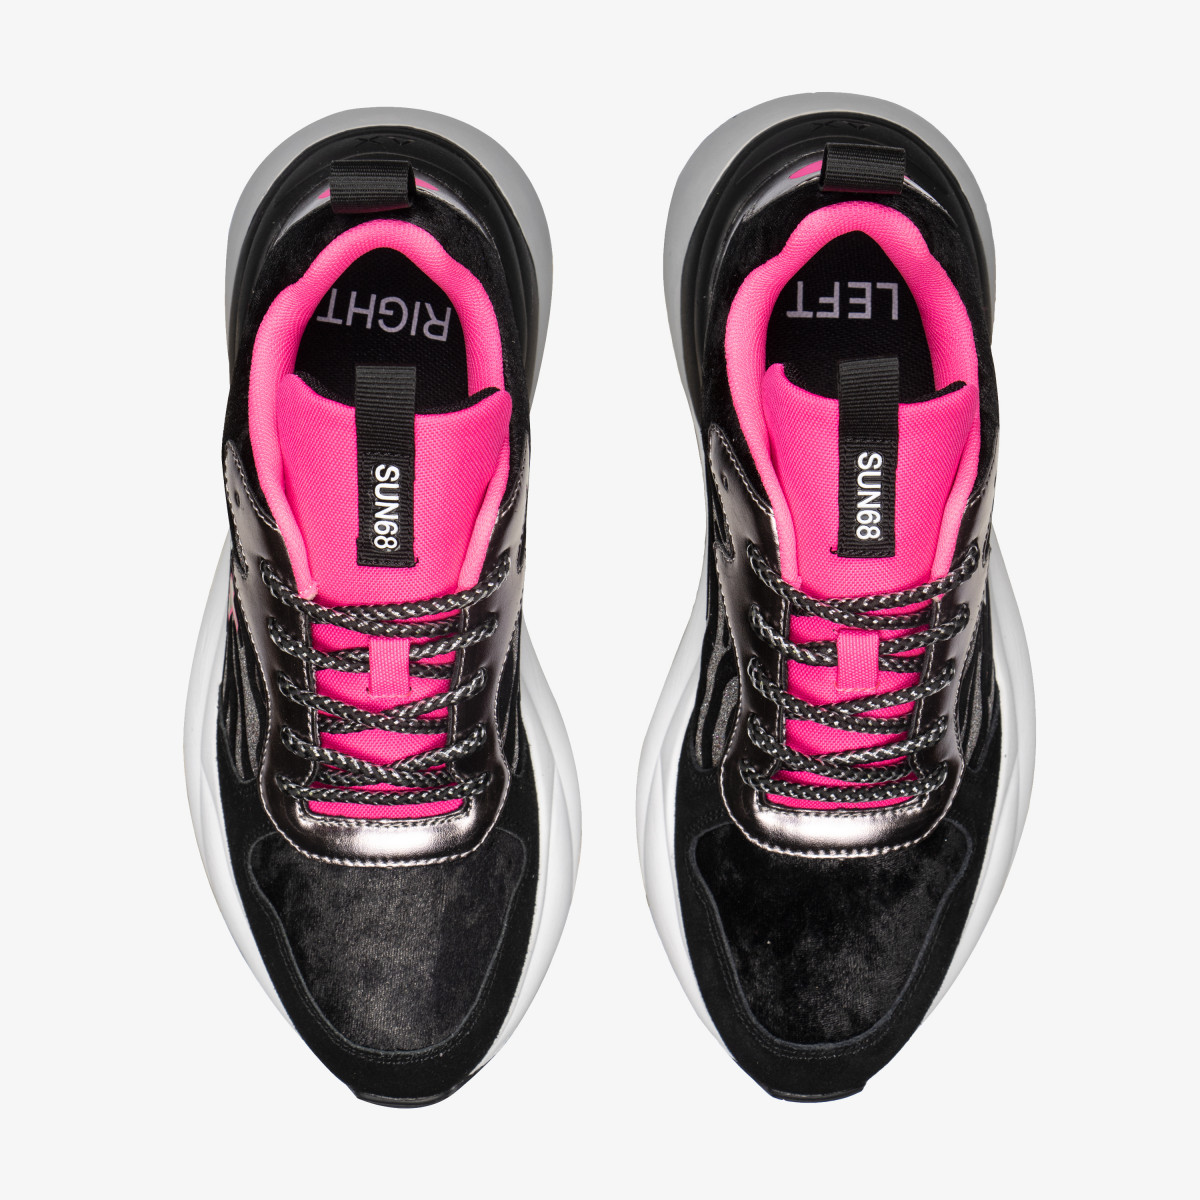 MEGAN ANIMAL BLACK/FUXIA